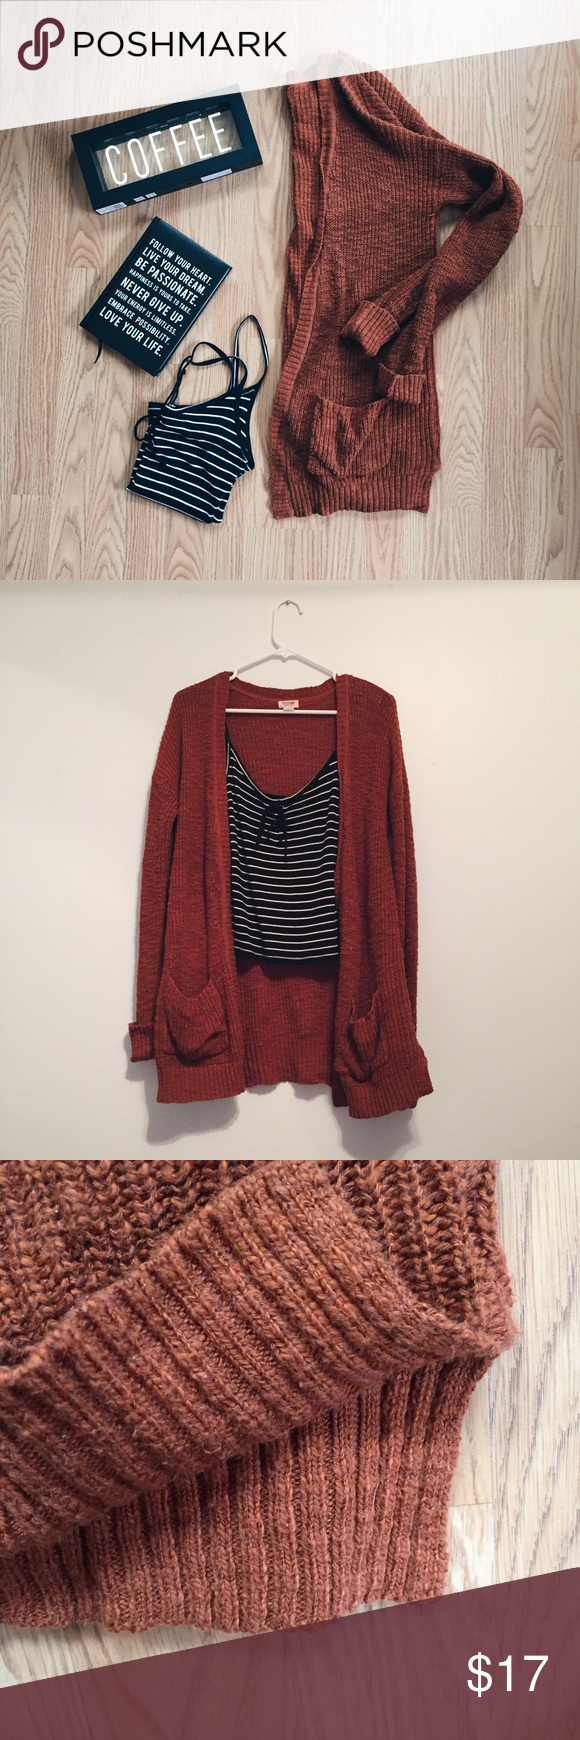 ▫️Mossimo Burnt Orange Cable Knit Cardigan ▫ | Discover best ...